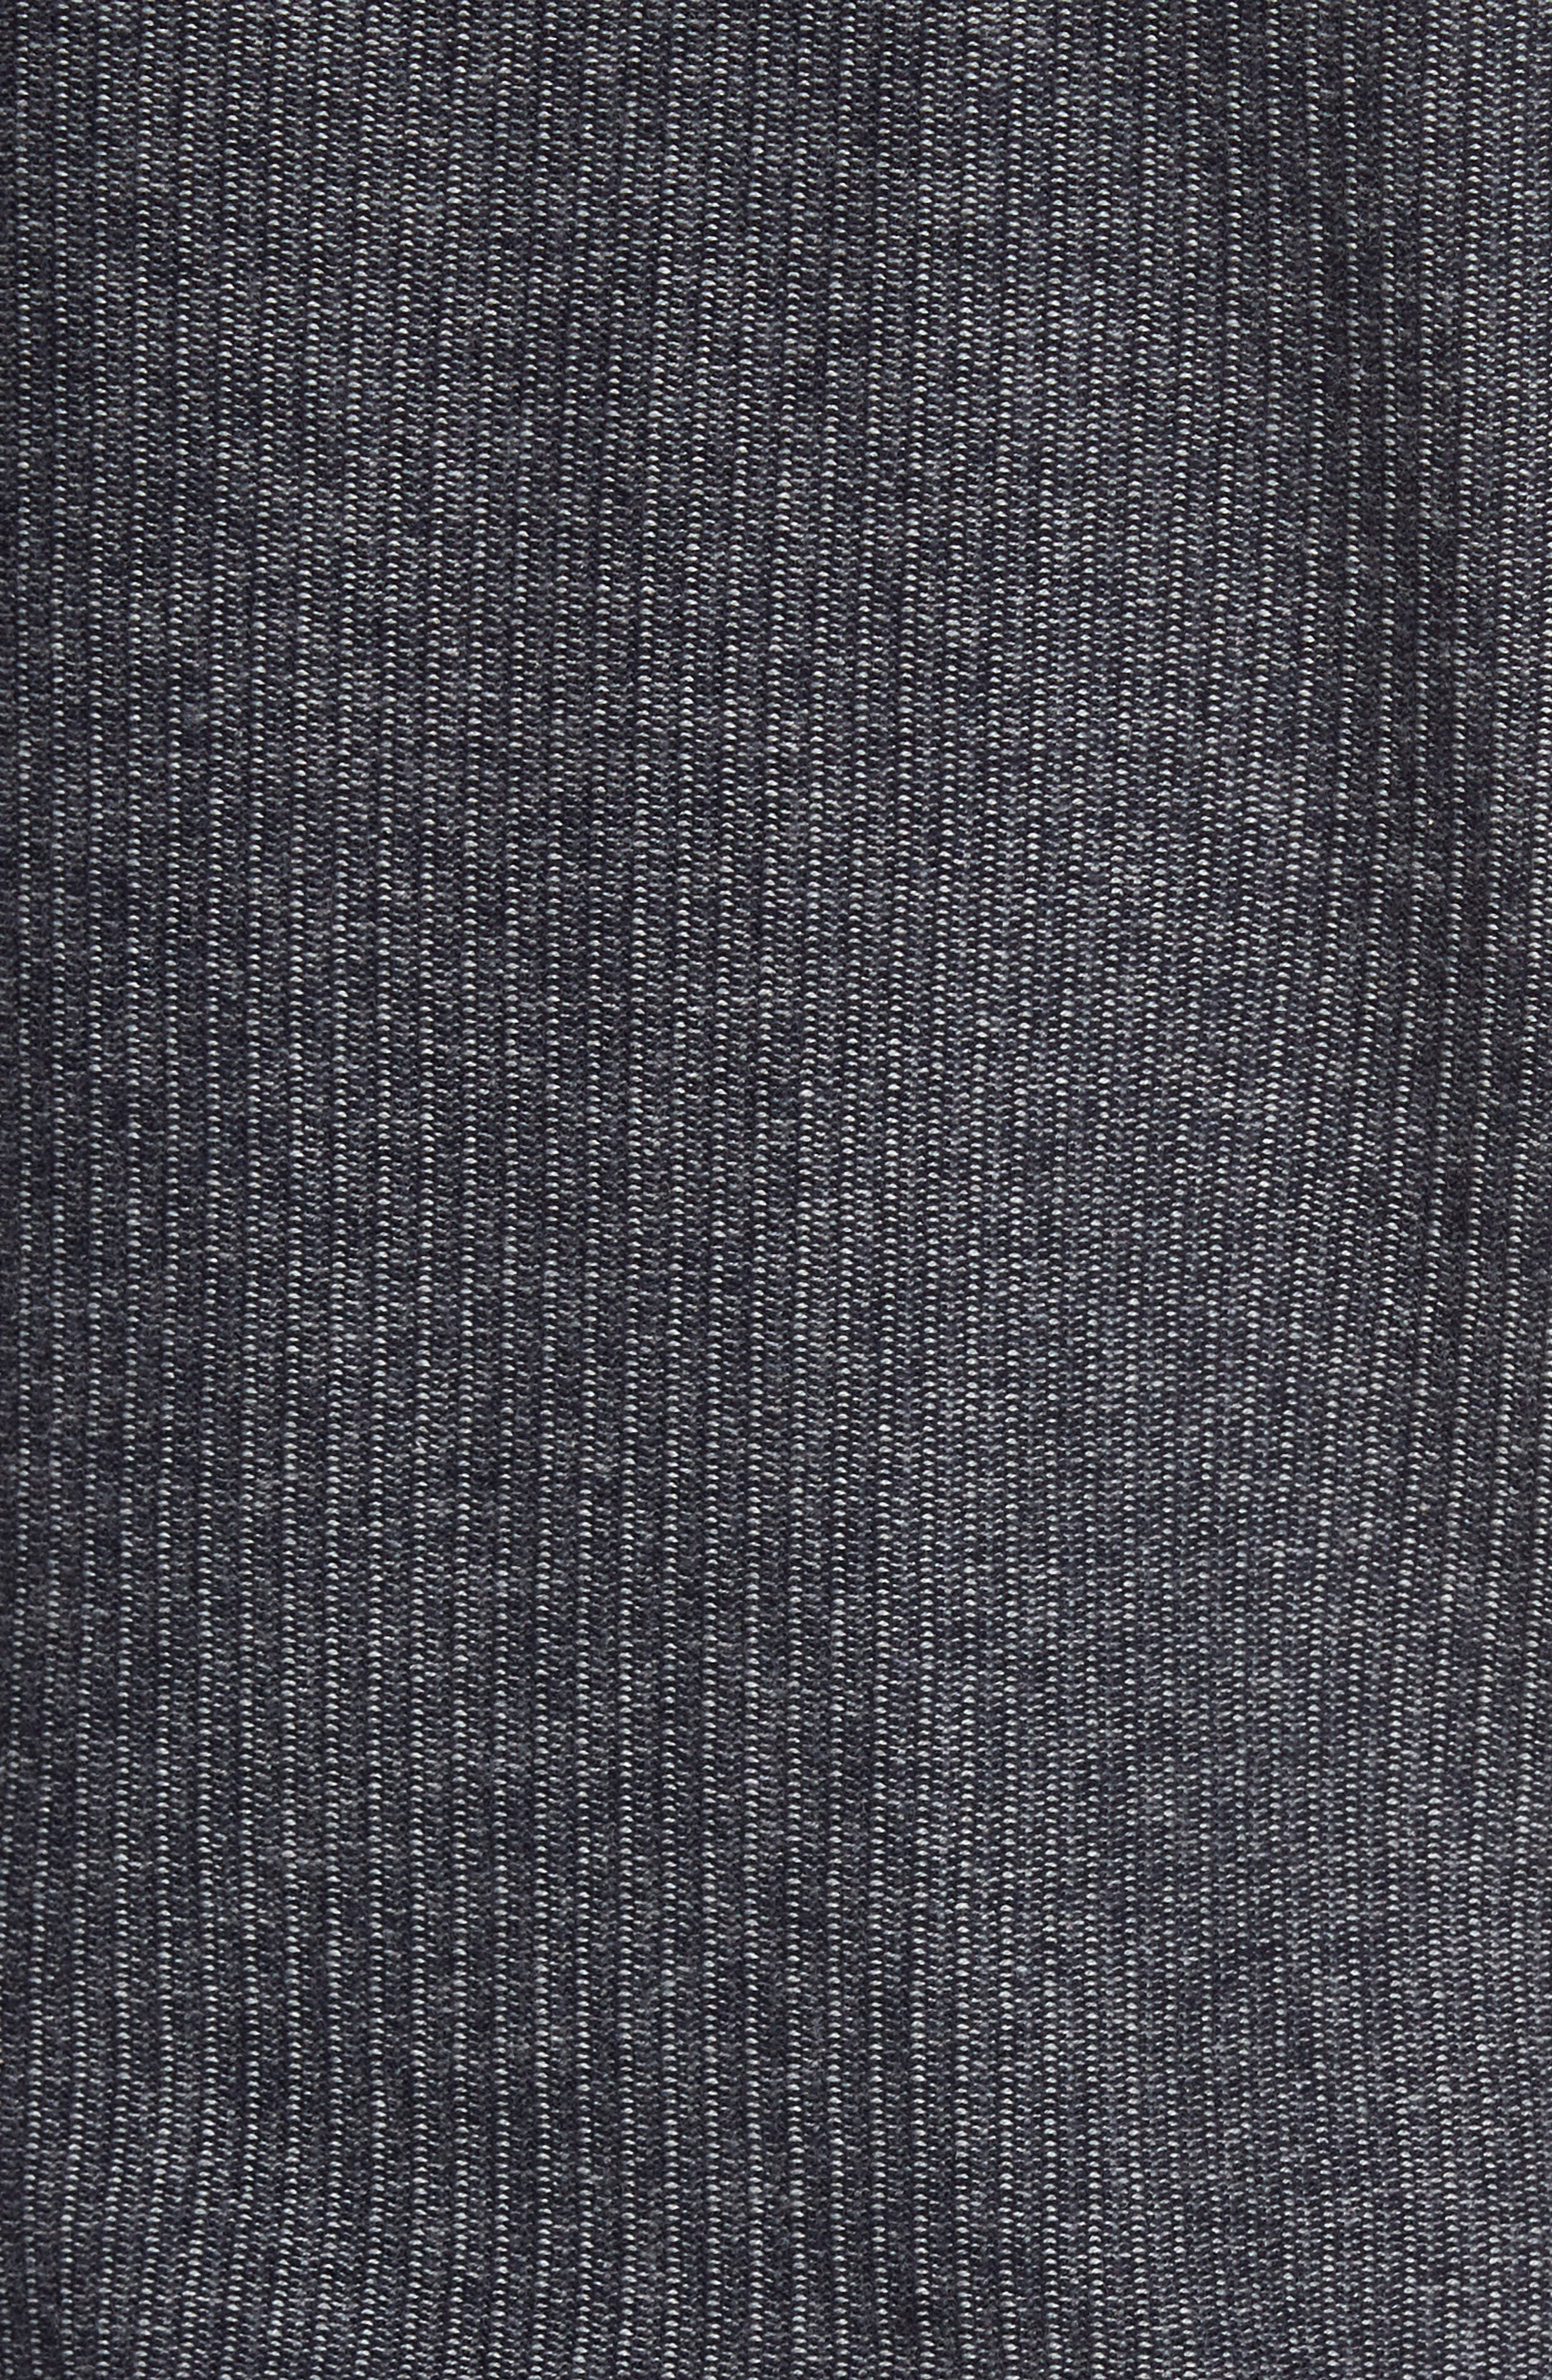 Cotton & Cashmere Sweater,                             Alternate thumbnail 5, color,                             Midnight